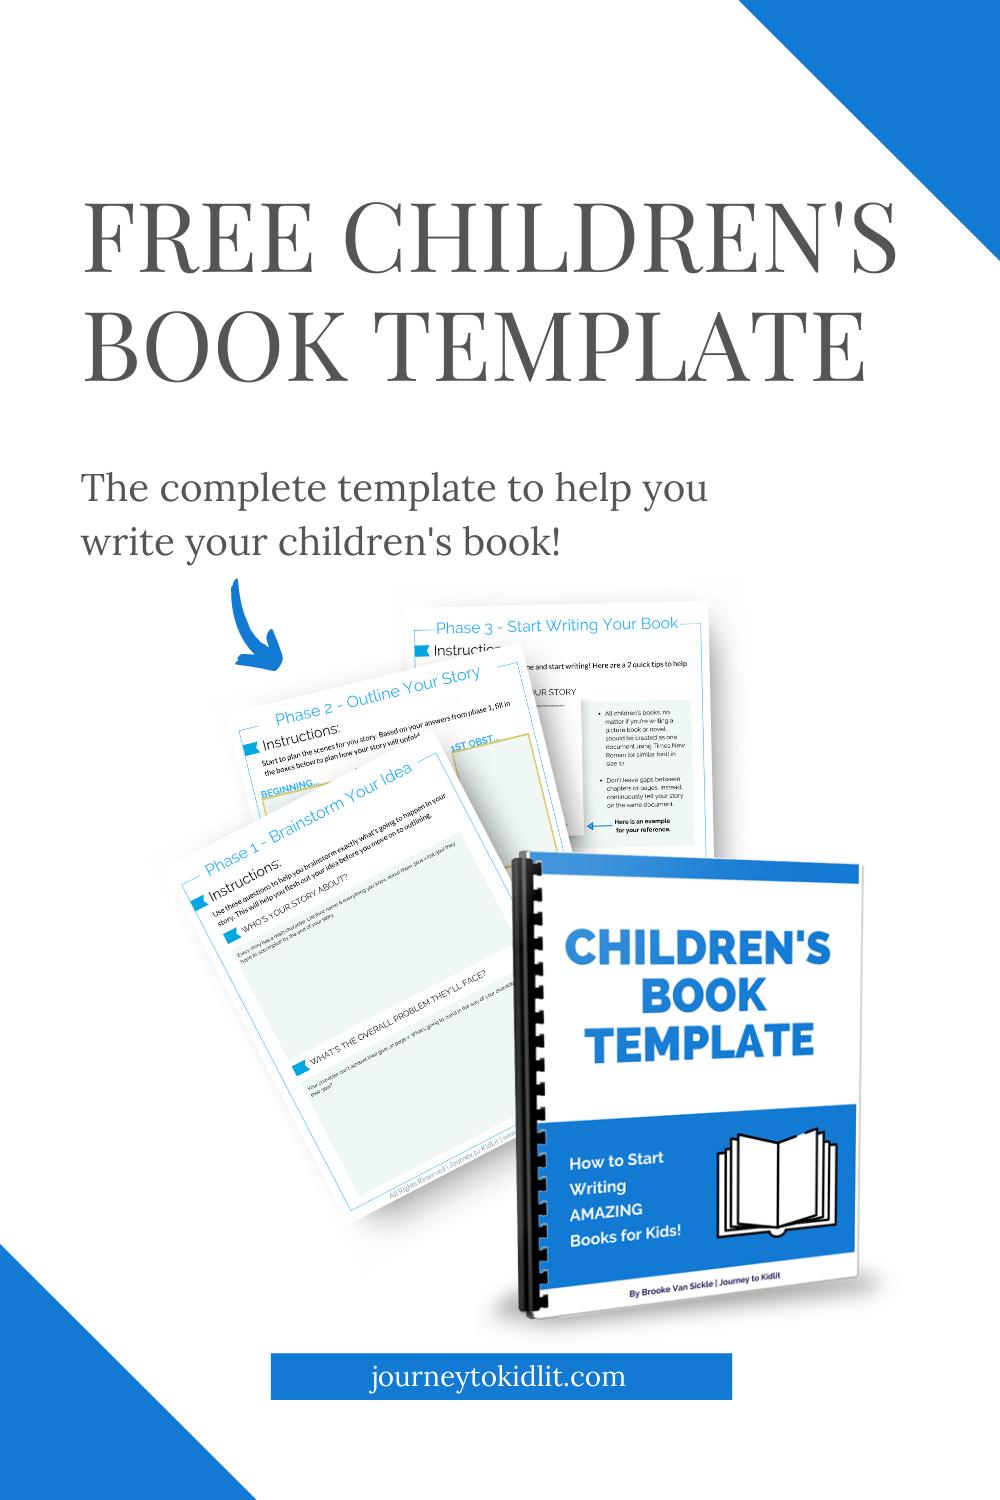 How To Write A Children S Book Free Template Download Book Writing Tips Writing Kids Books Writing Childrens Books